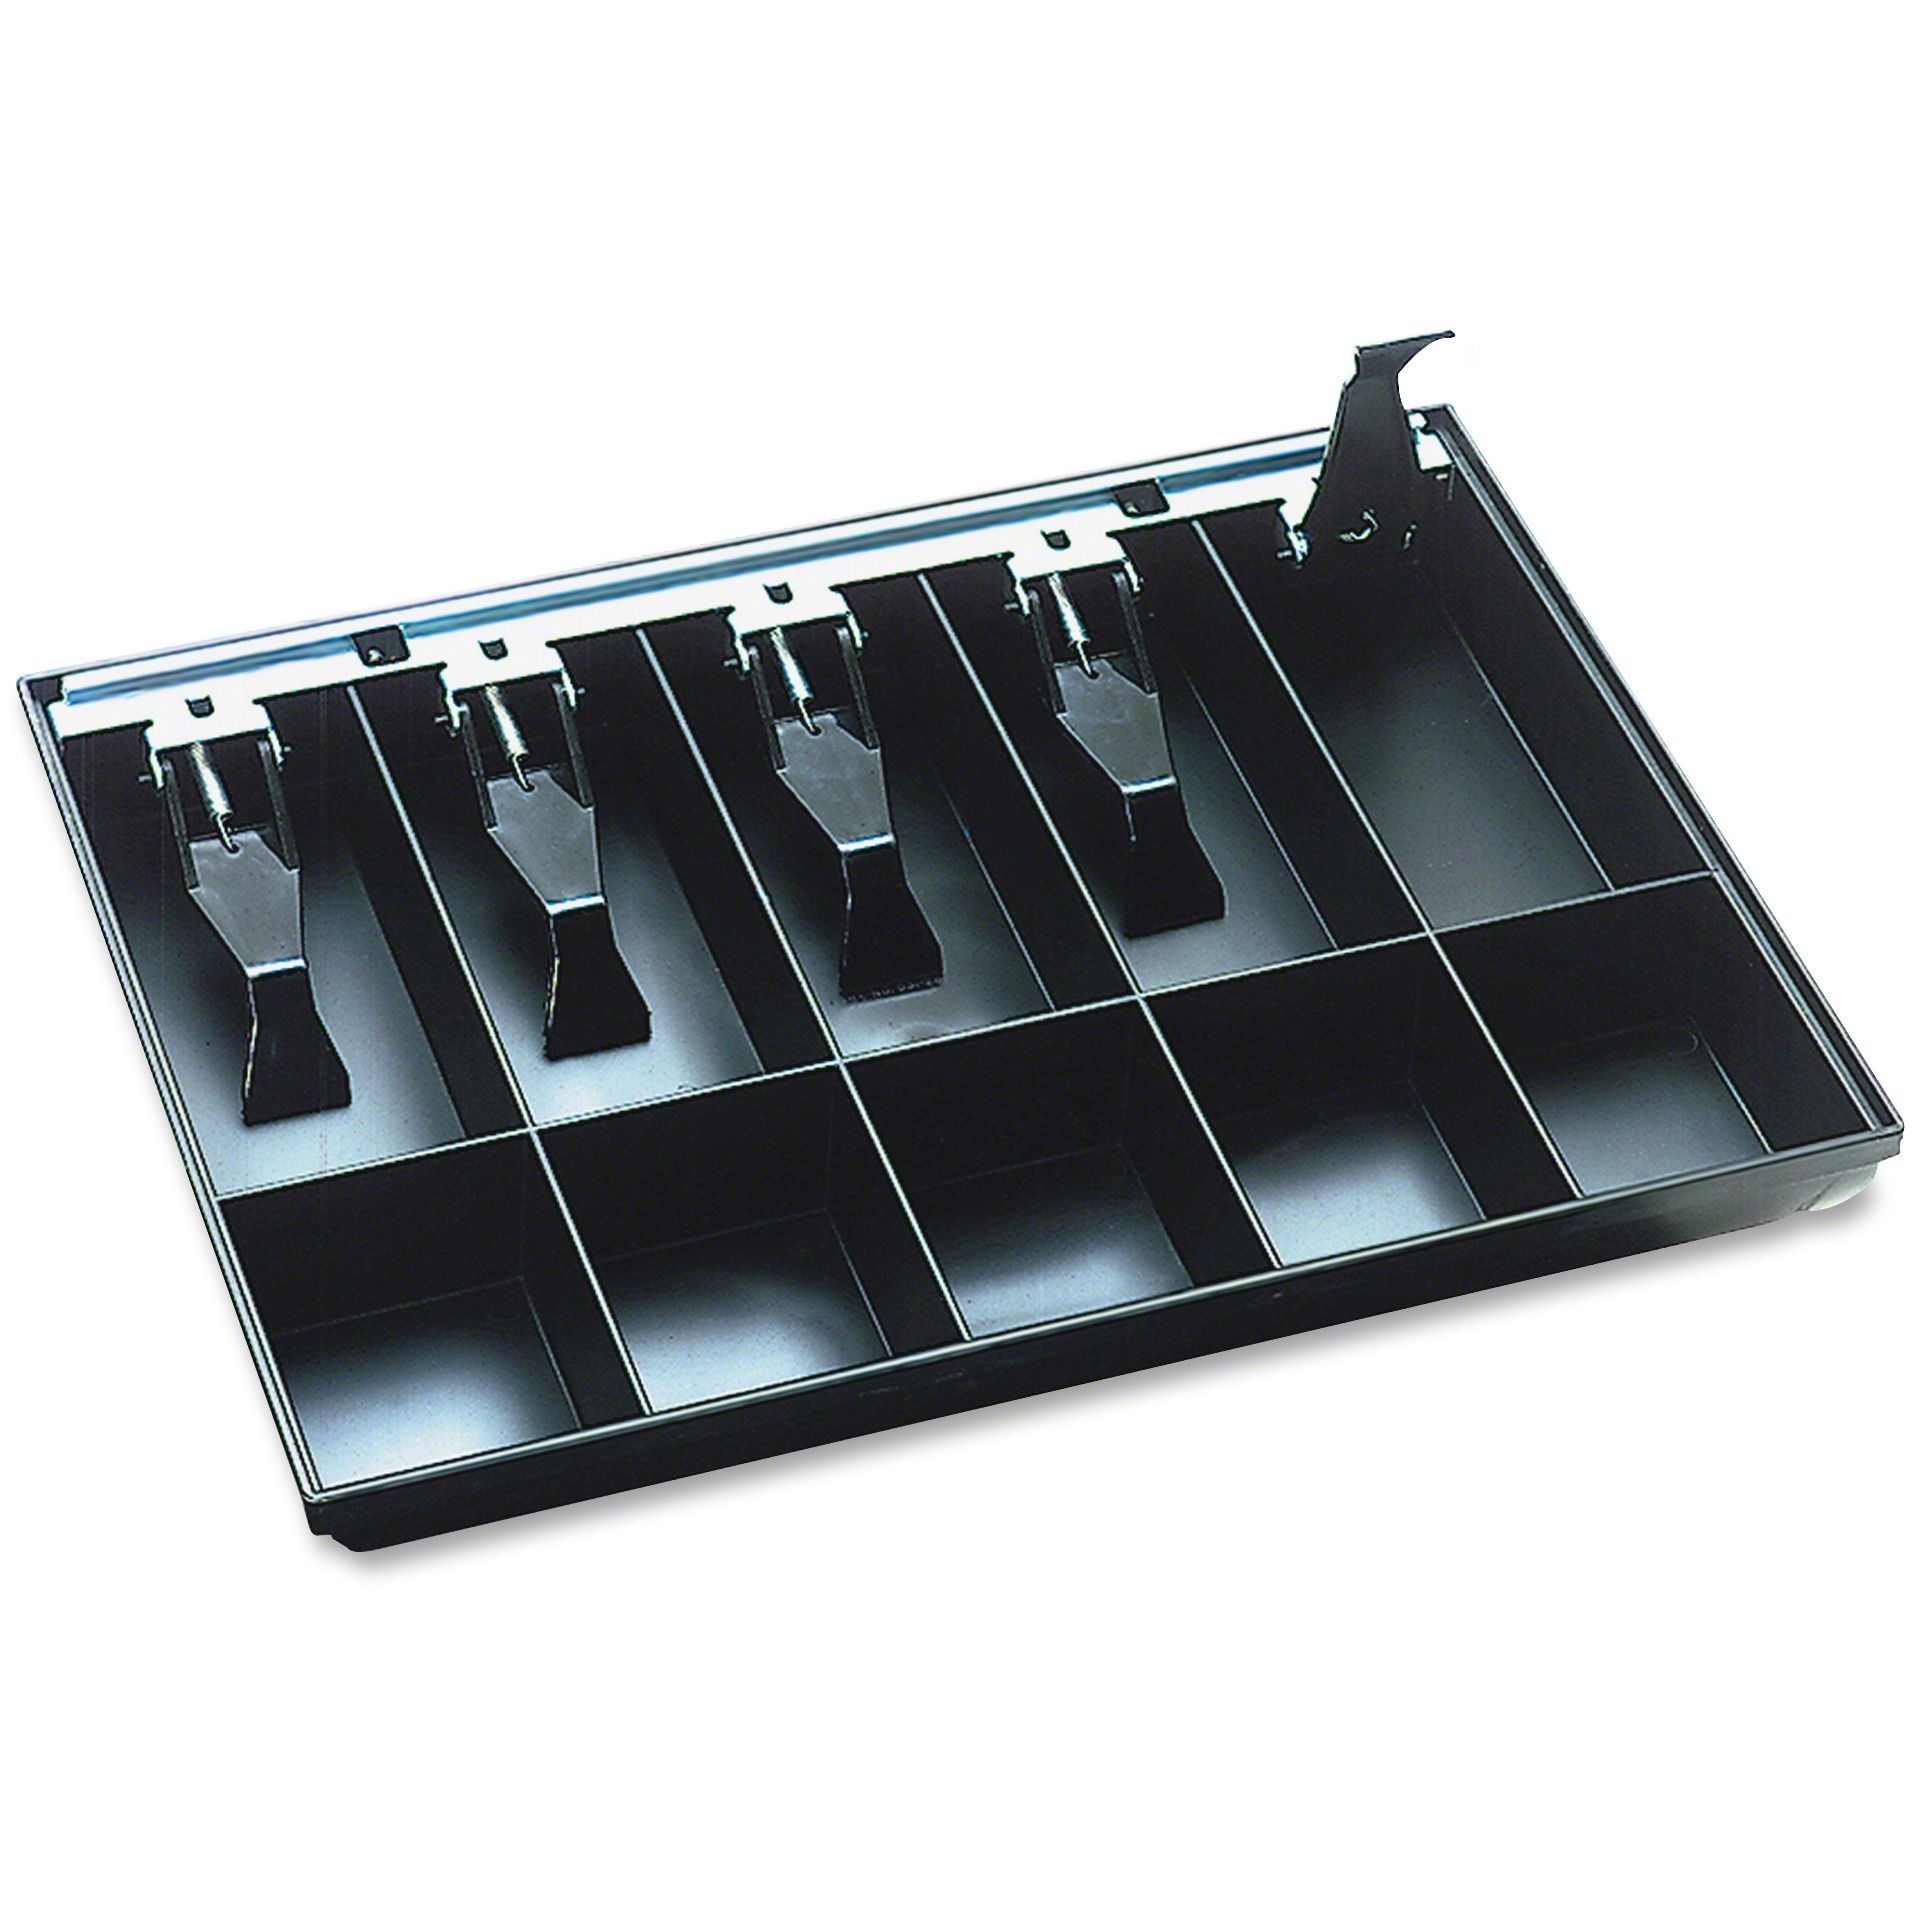 MMF, MMF225286204, Cash Drawer Replacement Tray, 1, Black